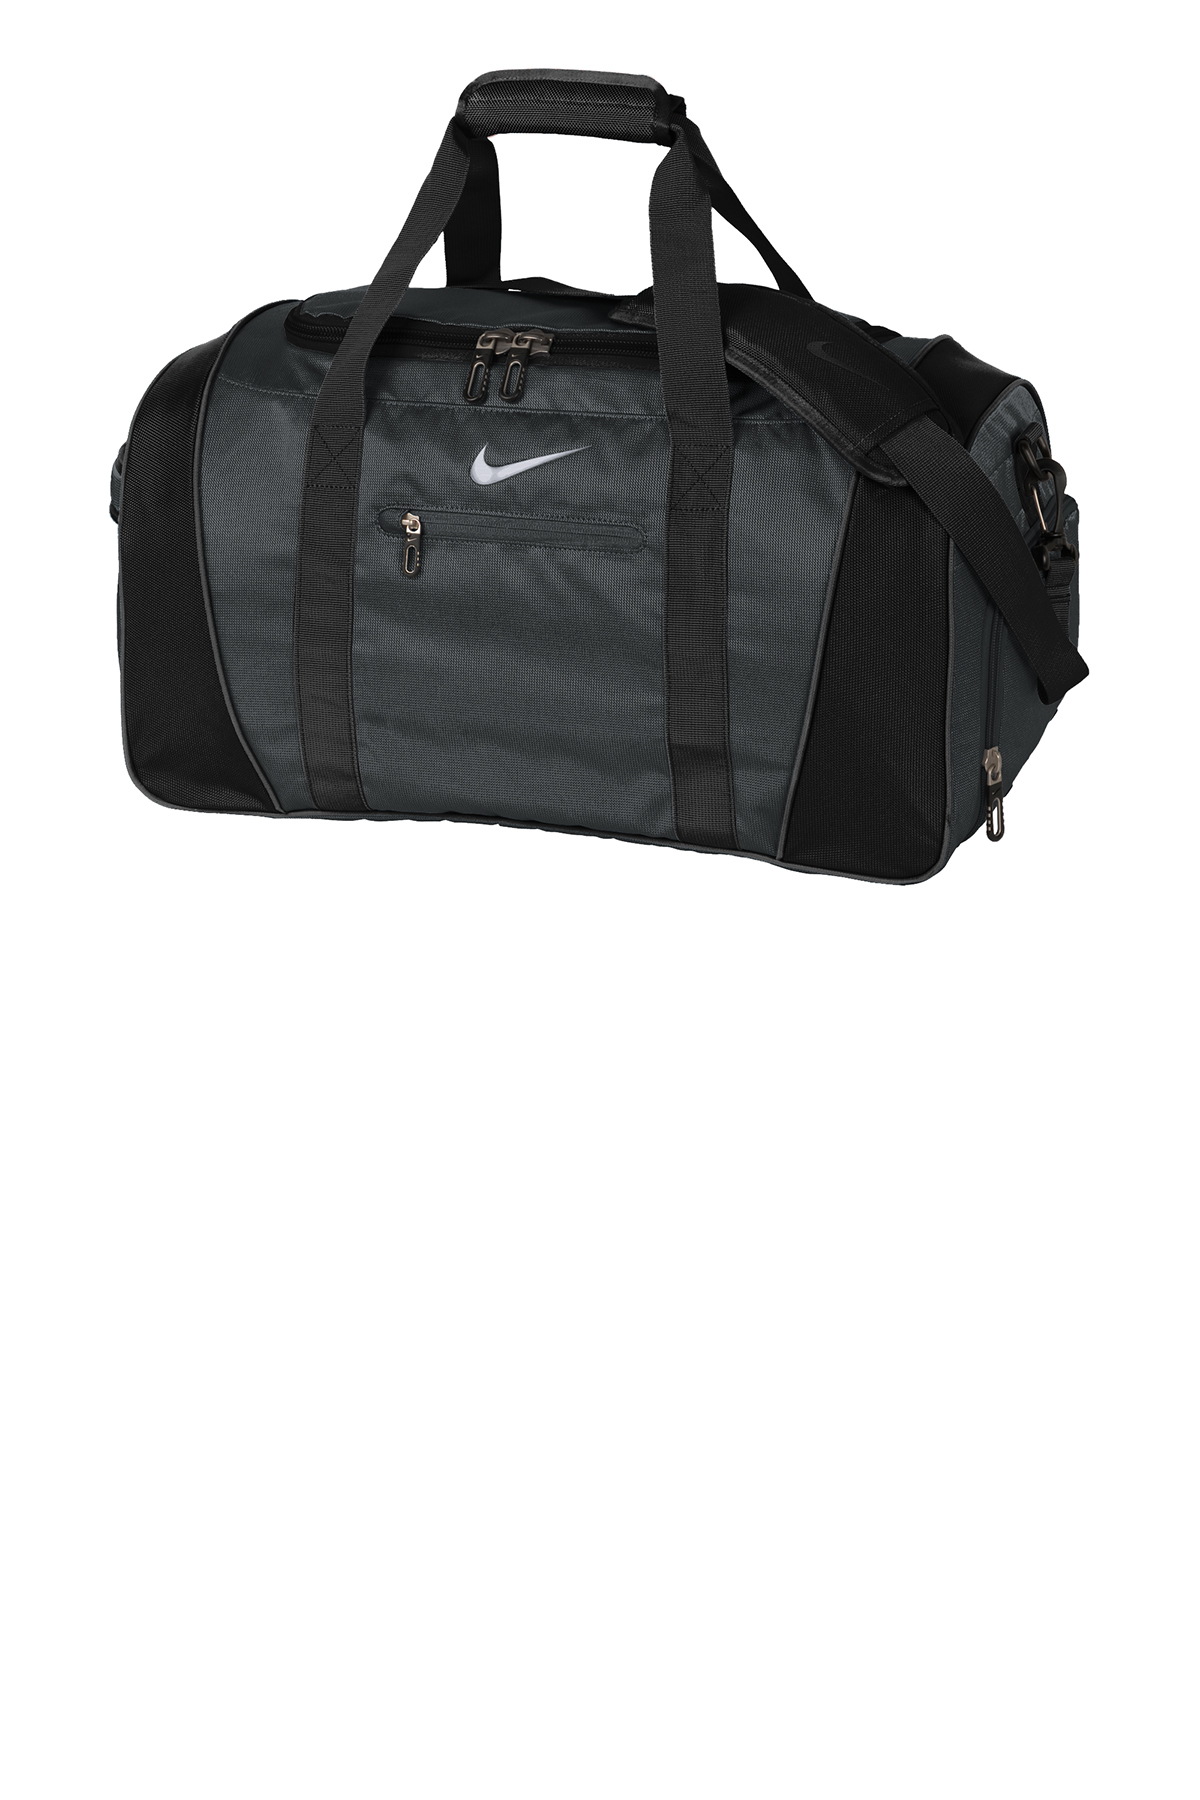 Nike Medium Duffel  2bb6d5b9c09a7